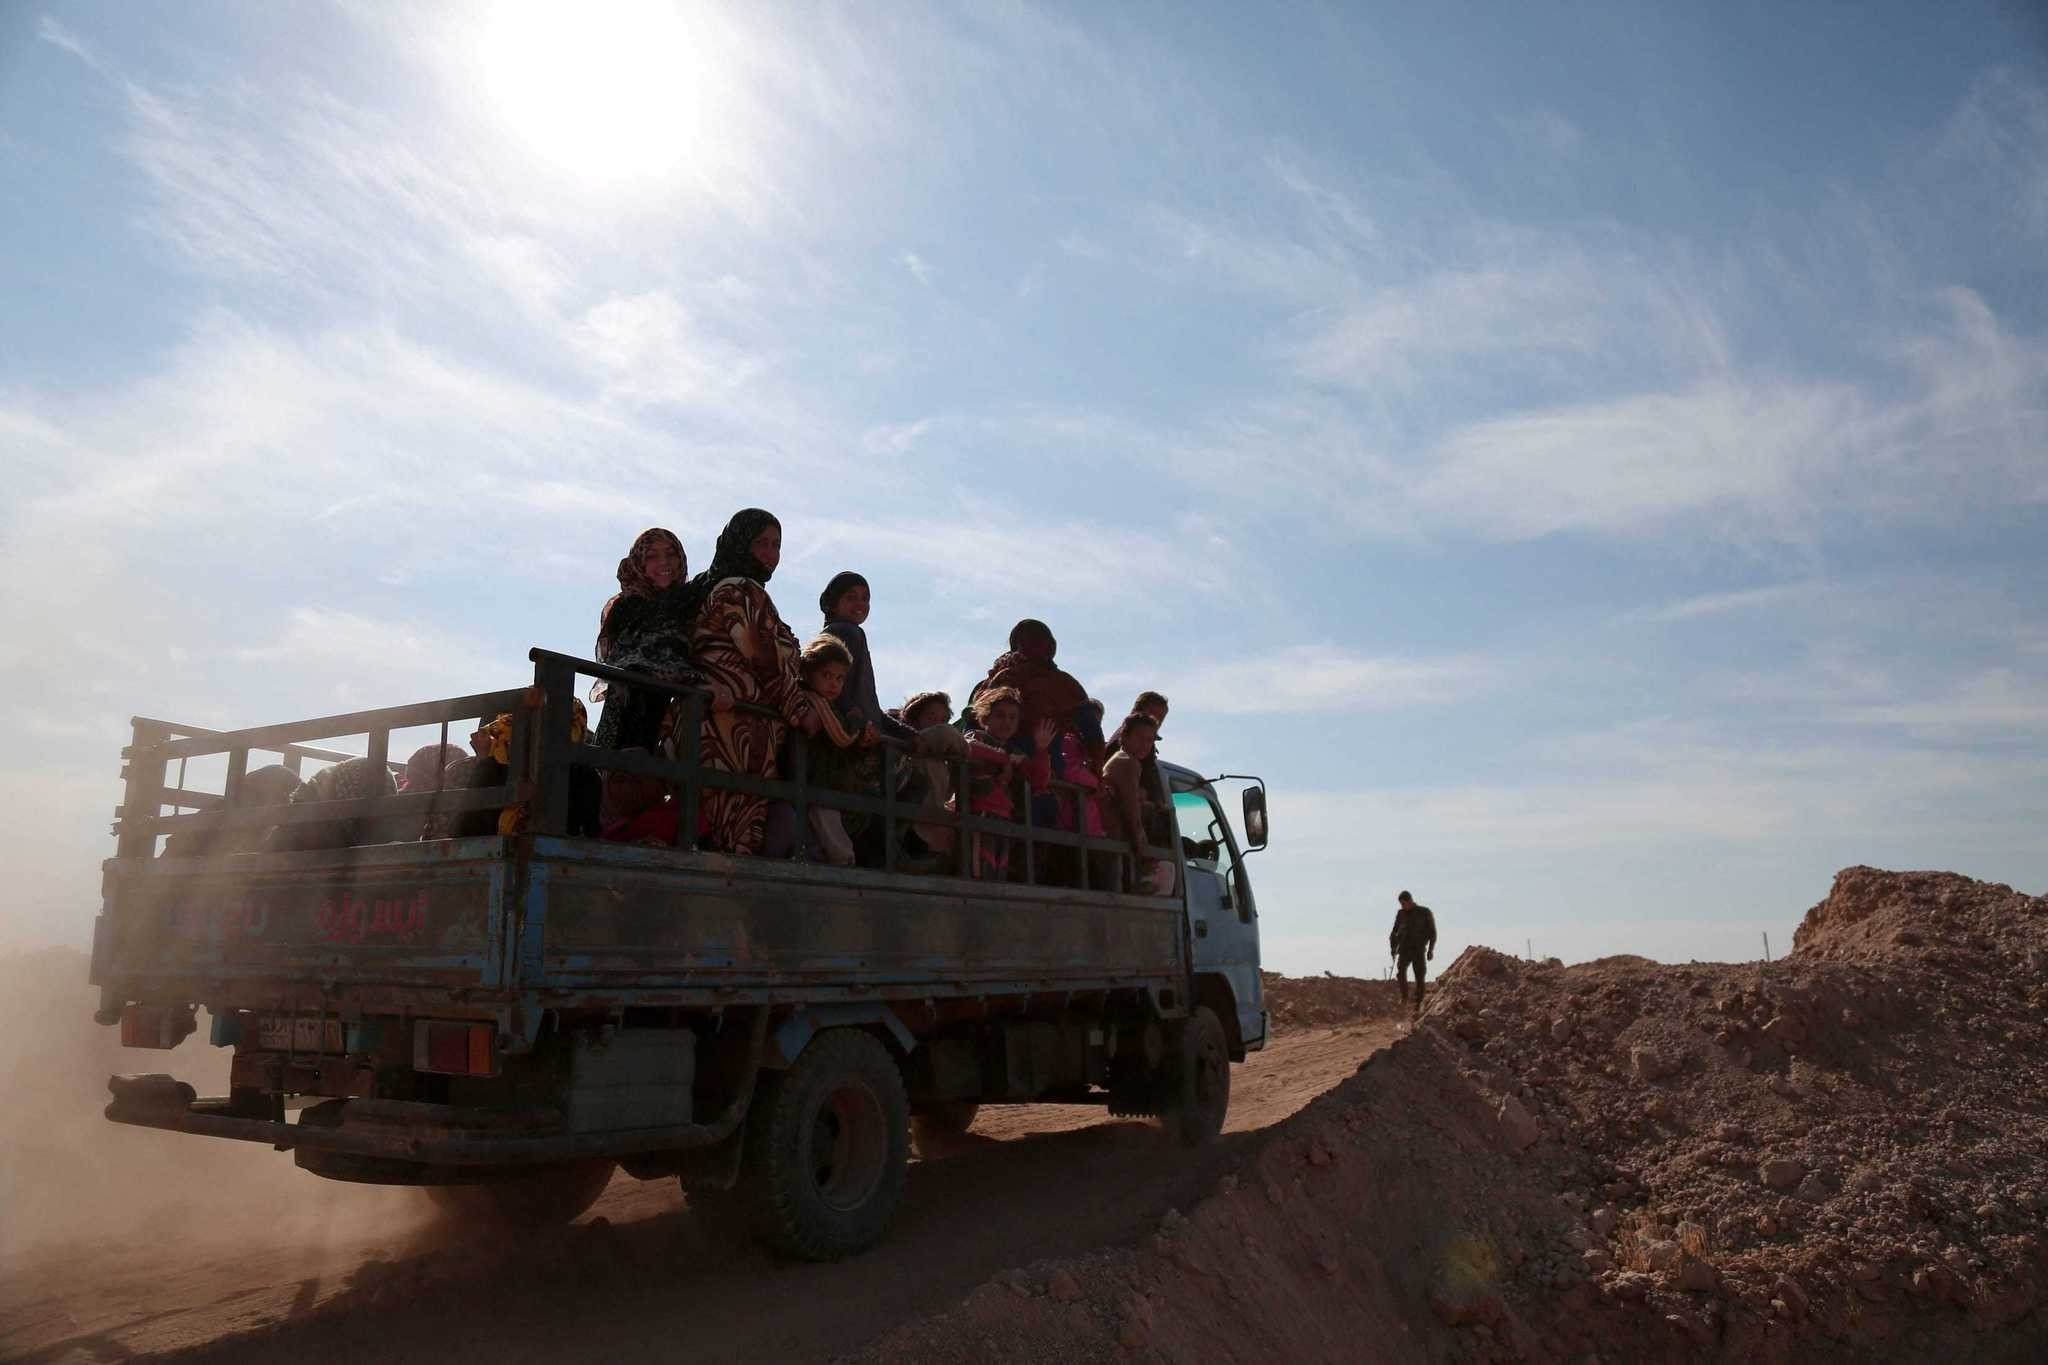 People fleeing areas of conflict ride a vehicle, north of Raqqa city, Syria, Nov. 8, 2016.